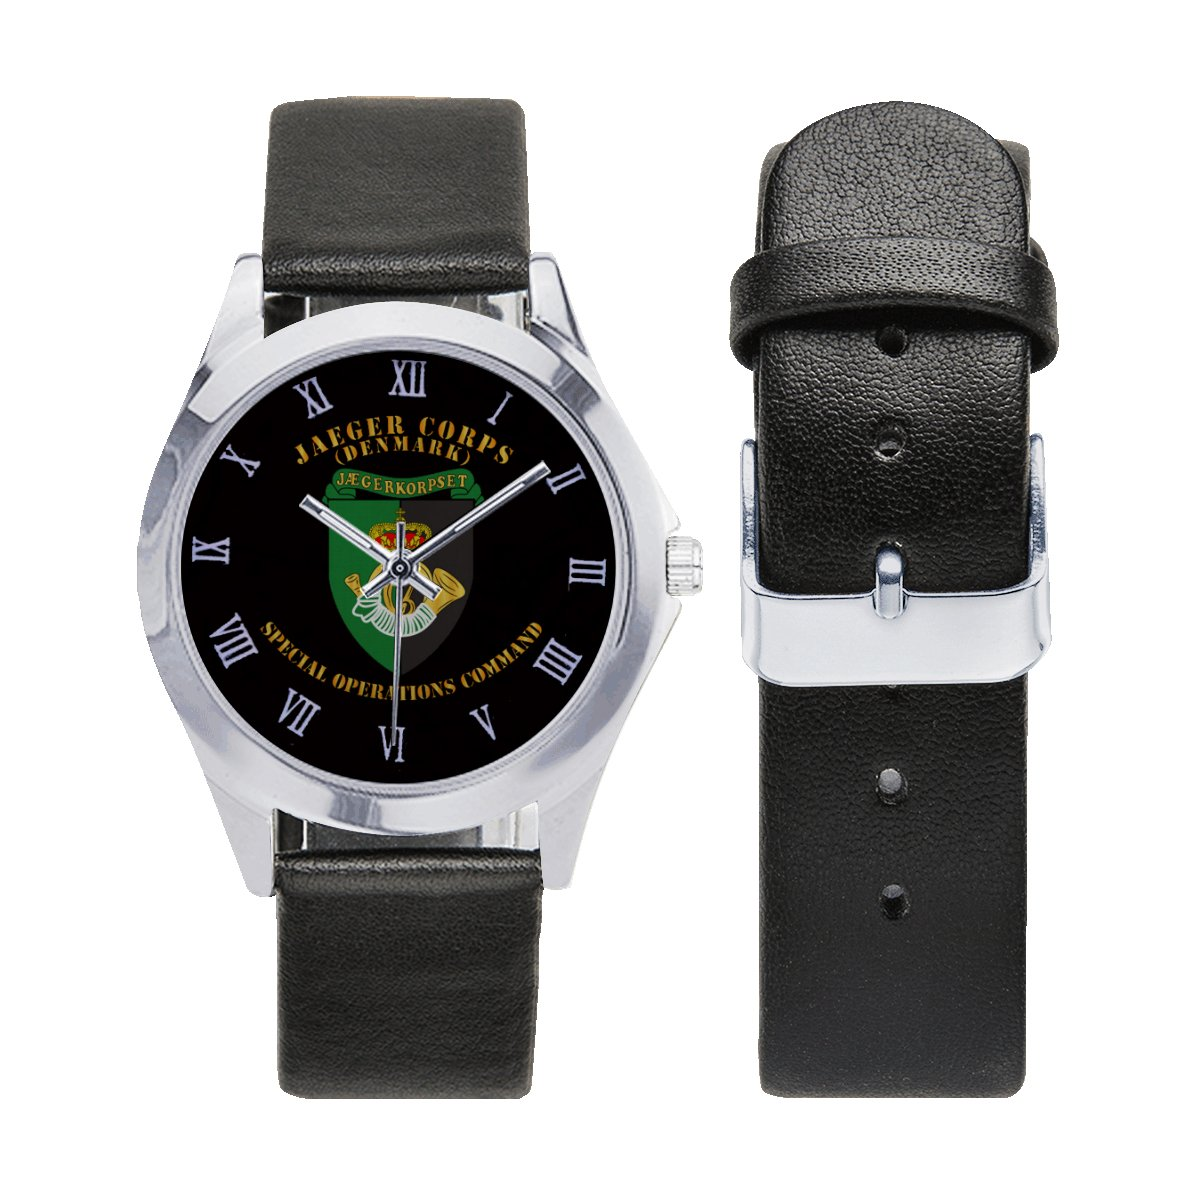 Danish Denmark - Jaeger Corps - Special Force Command Logo Leather Strap Watch a perfect accessory